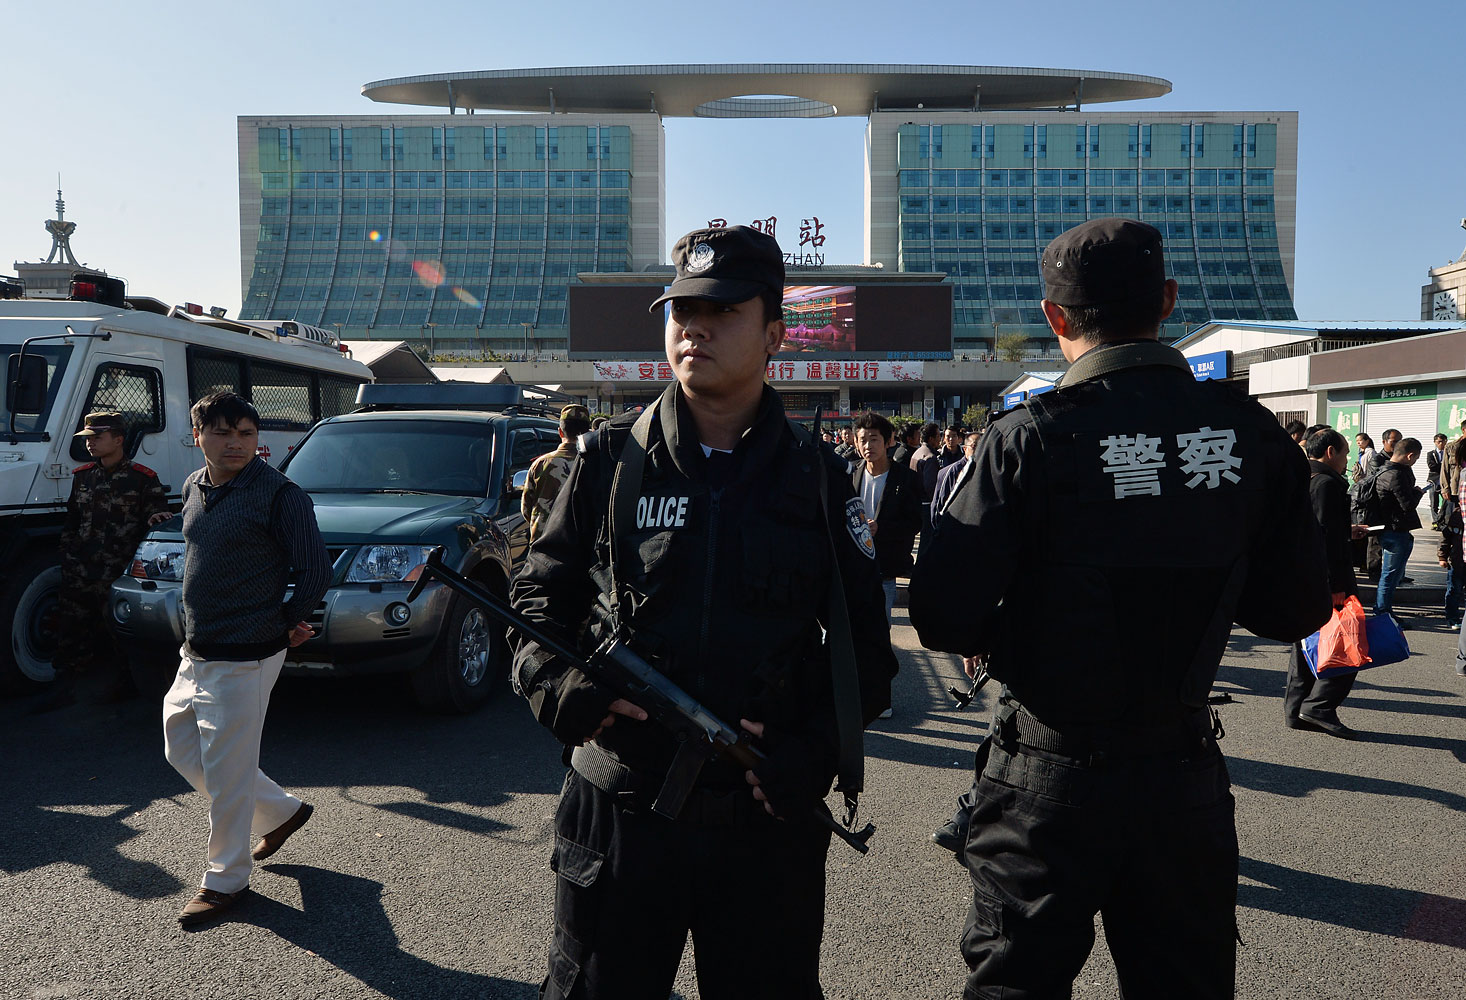 Chinese paramilitary police stand guard outside the scene of the terrorist attack at the main train station in Kunming, in the Chinese province of Yunnan, on March 3, 2014